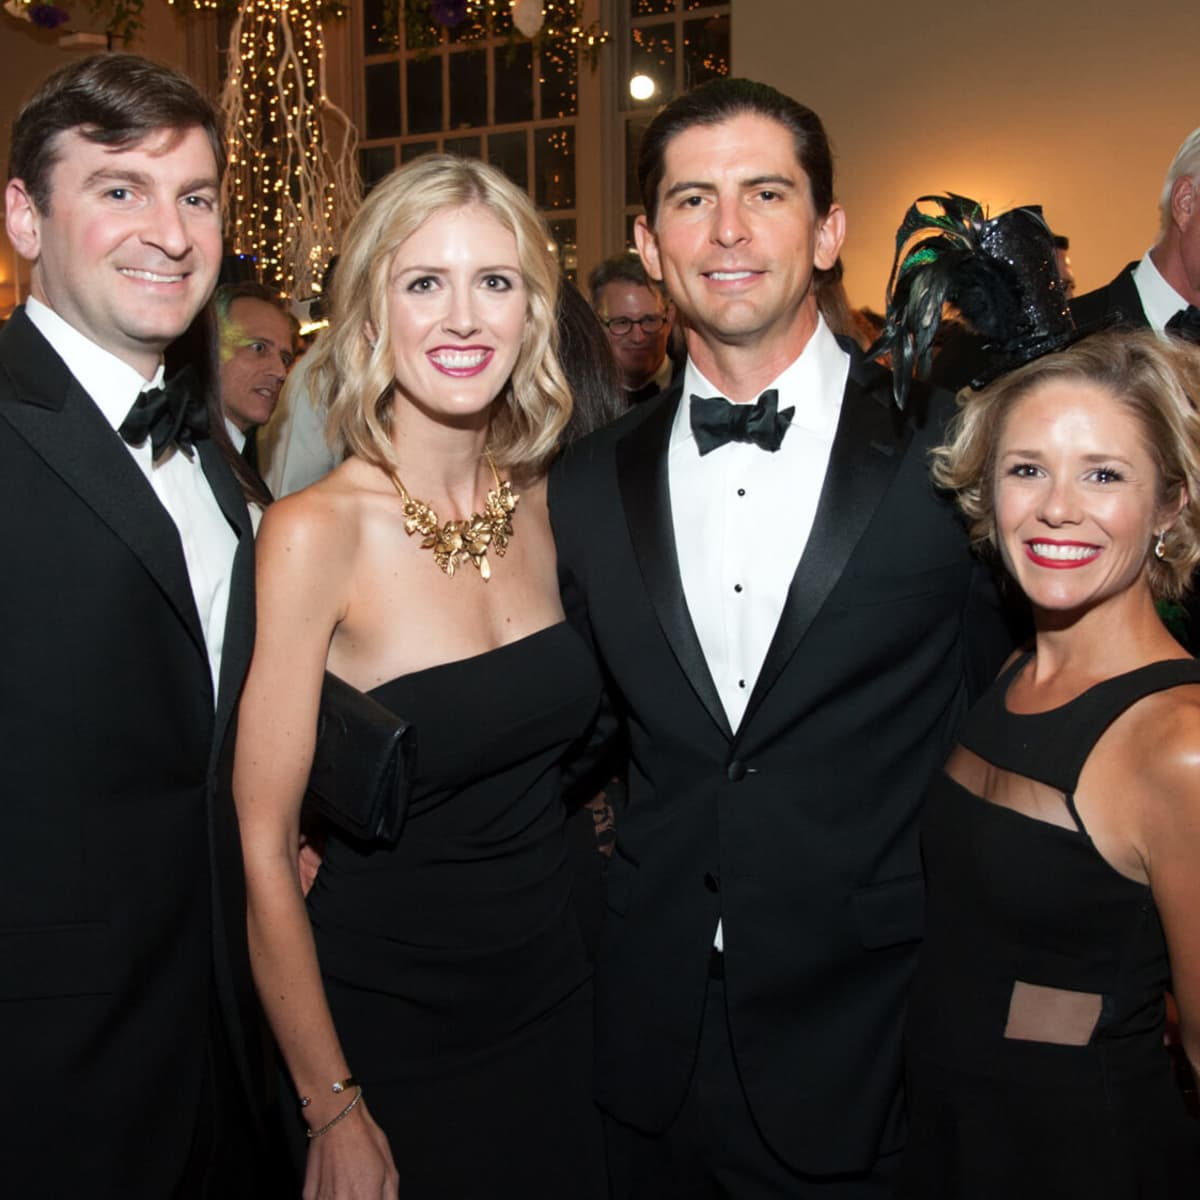 Houston, Childrens Museum of Houston Mad Hatters Ball, Oct. 2016, David Coleman, Abigail Coleman, Kyle Charles, Casey Charles